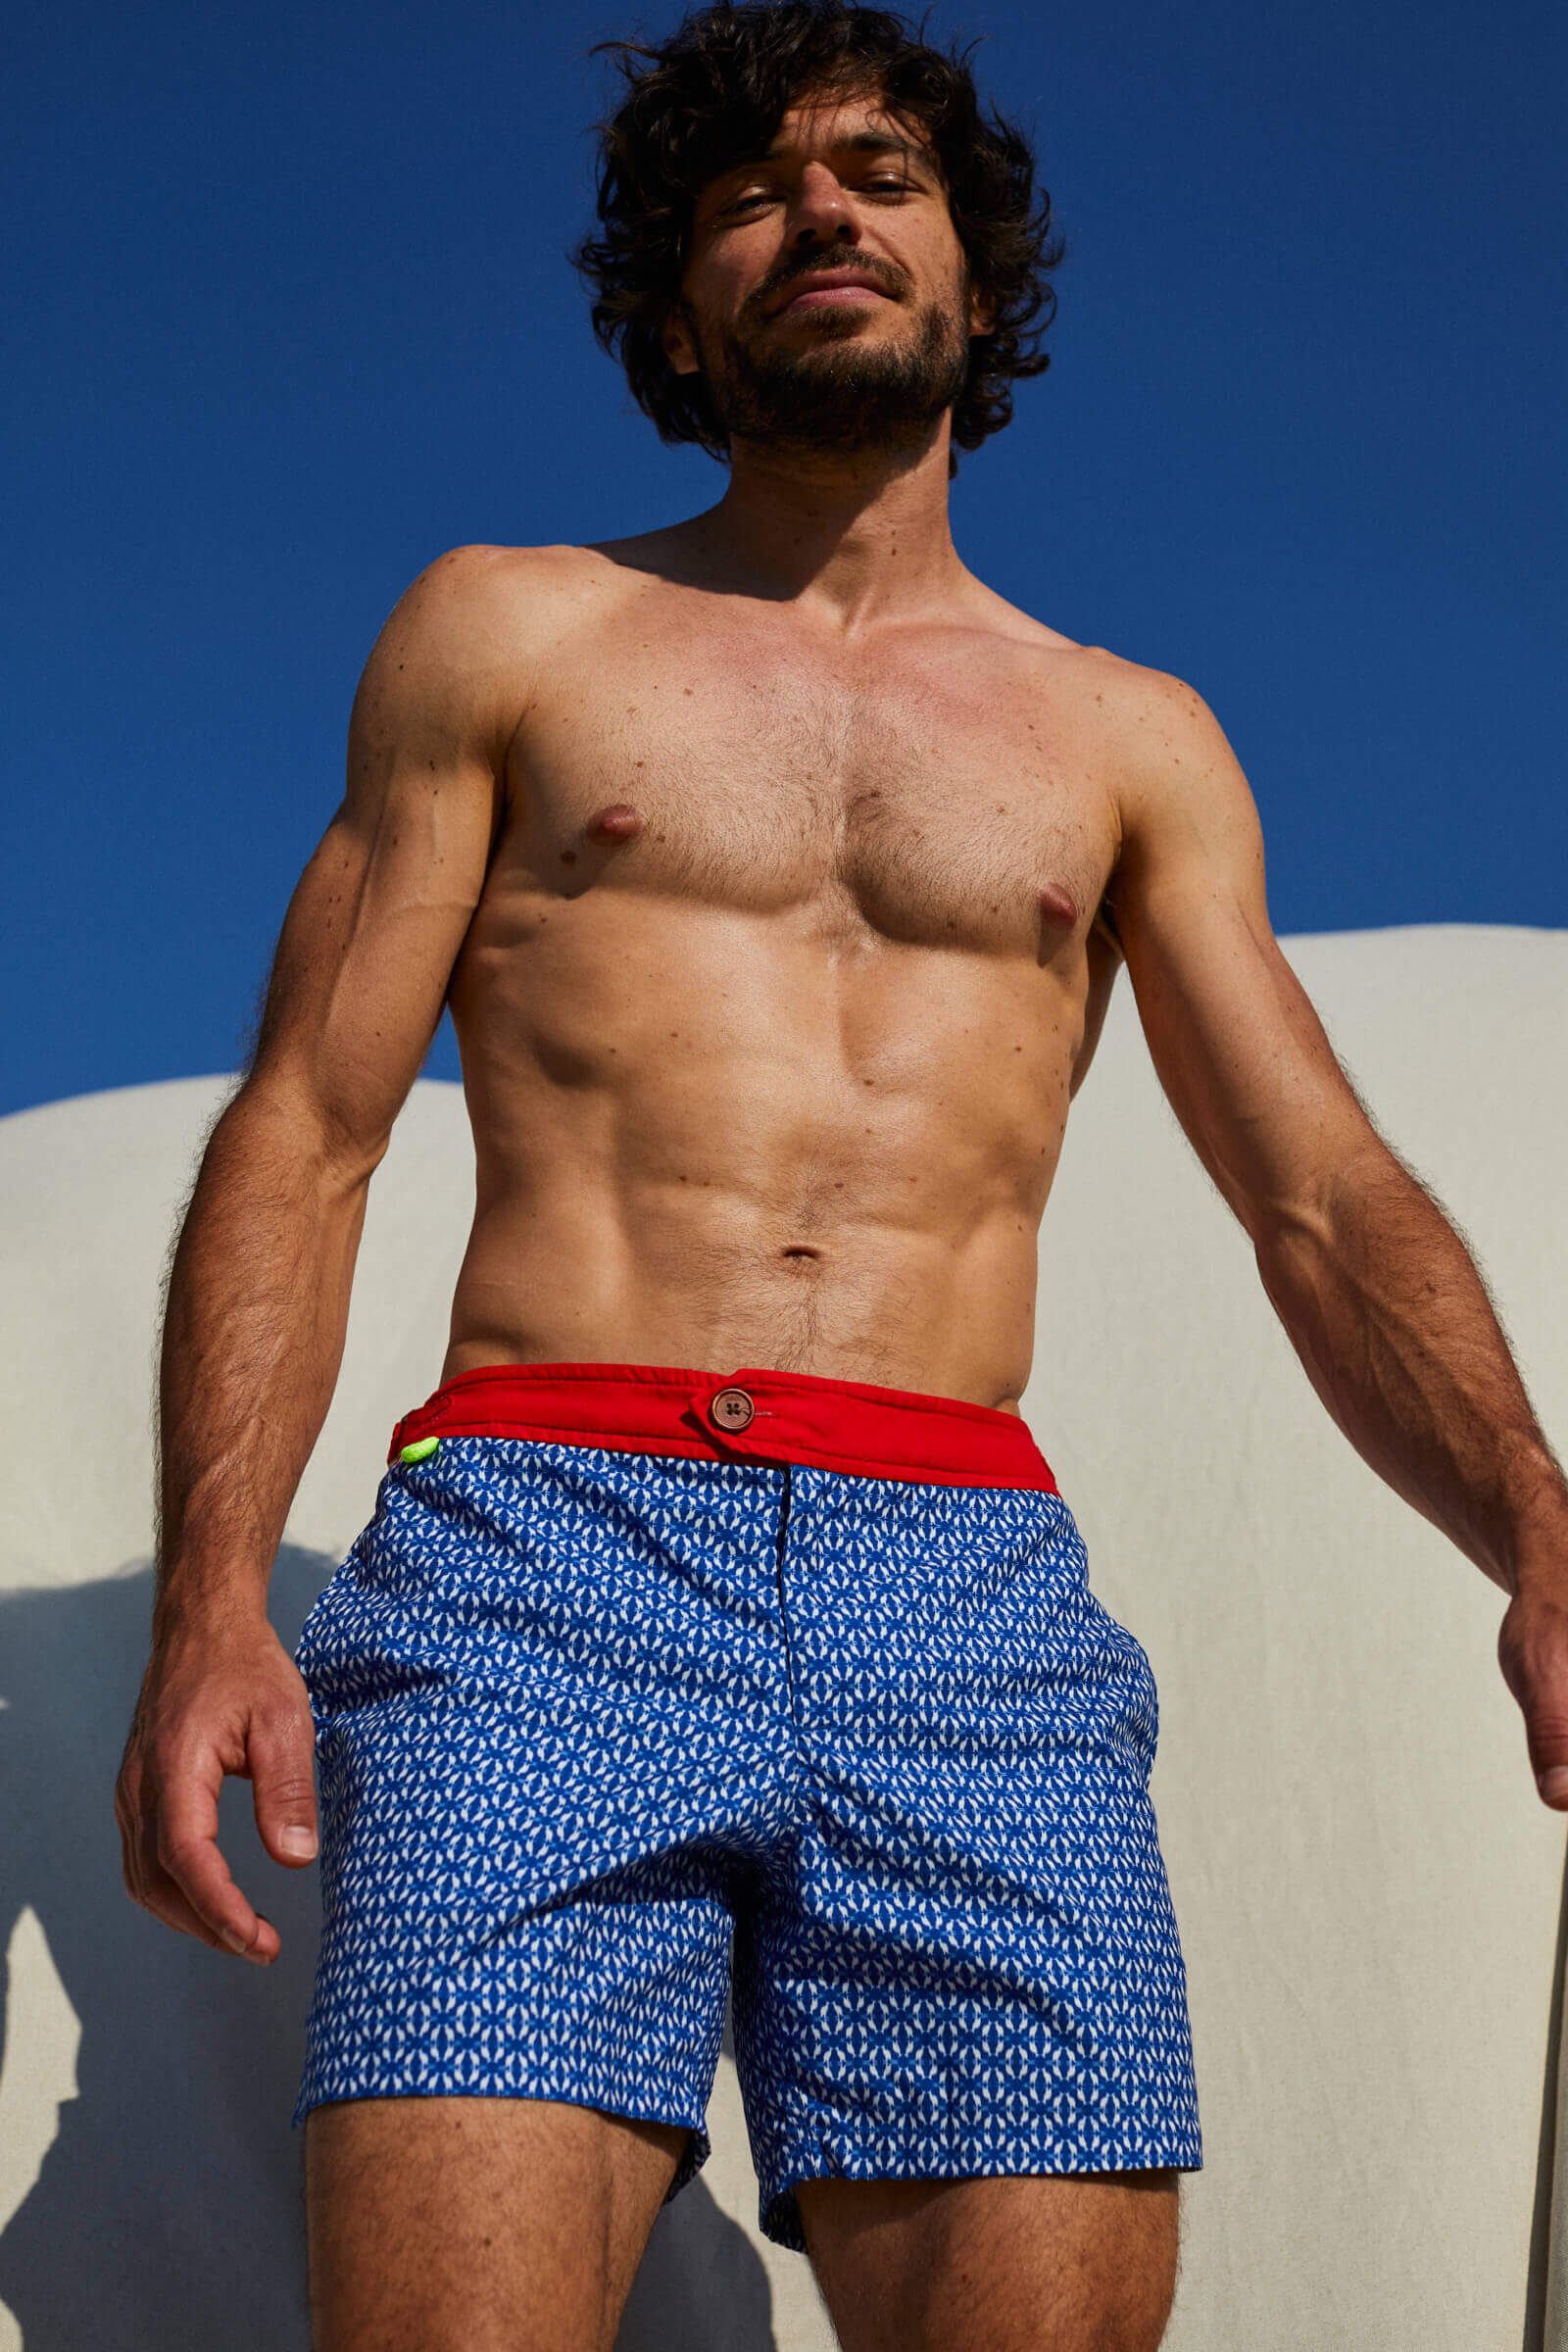 Man wearing a swimsuit with buttoned belt Air Navy Kangaroos